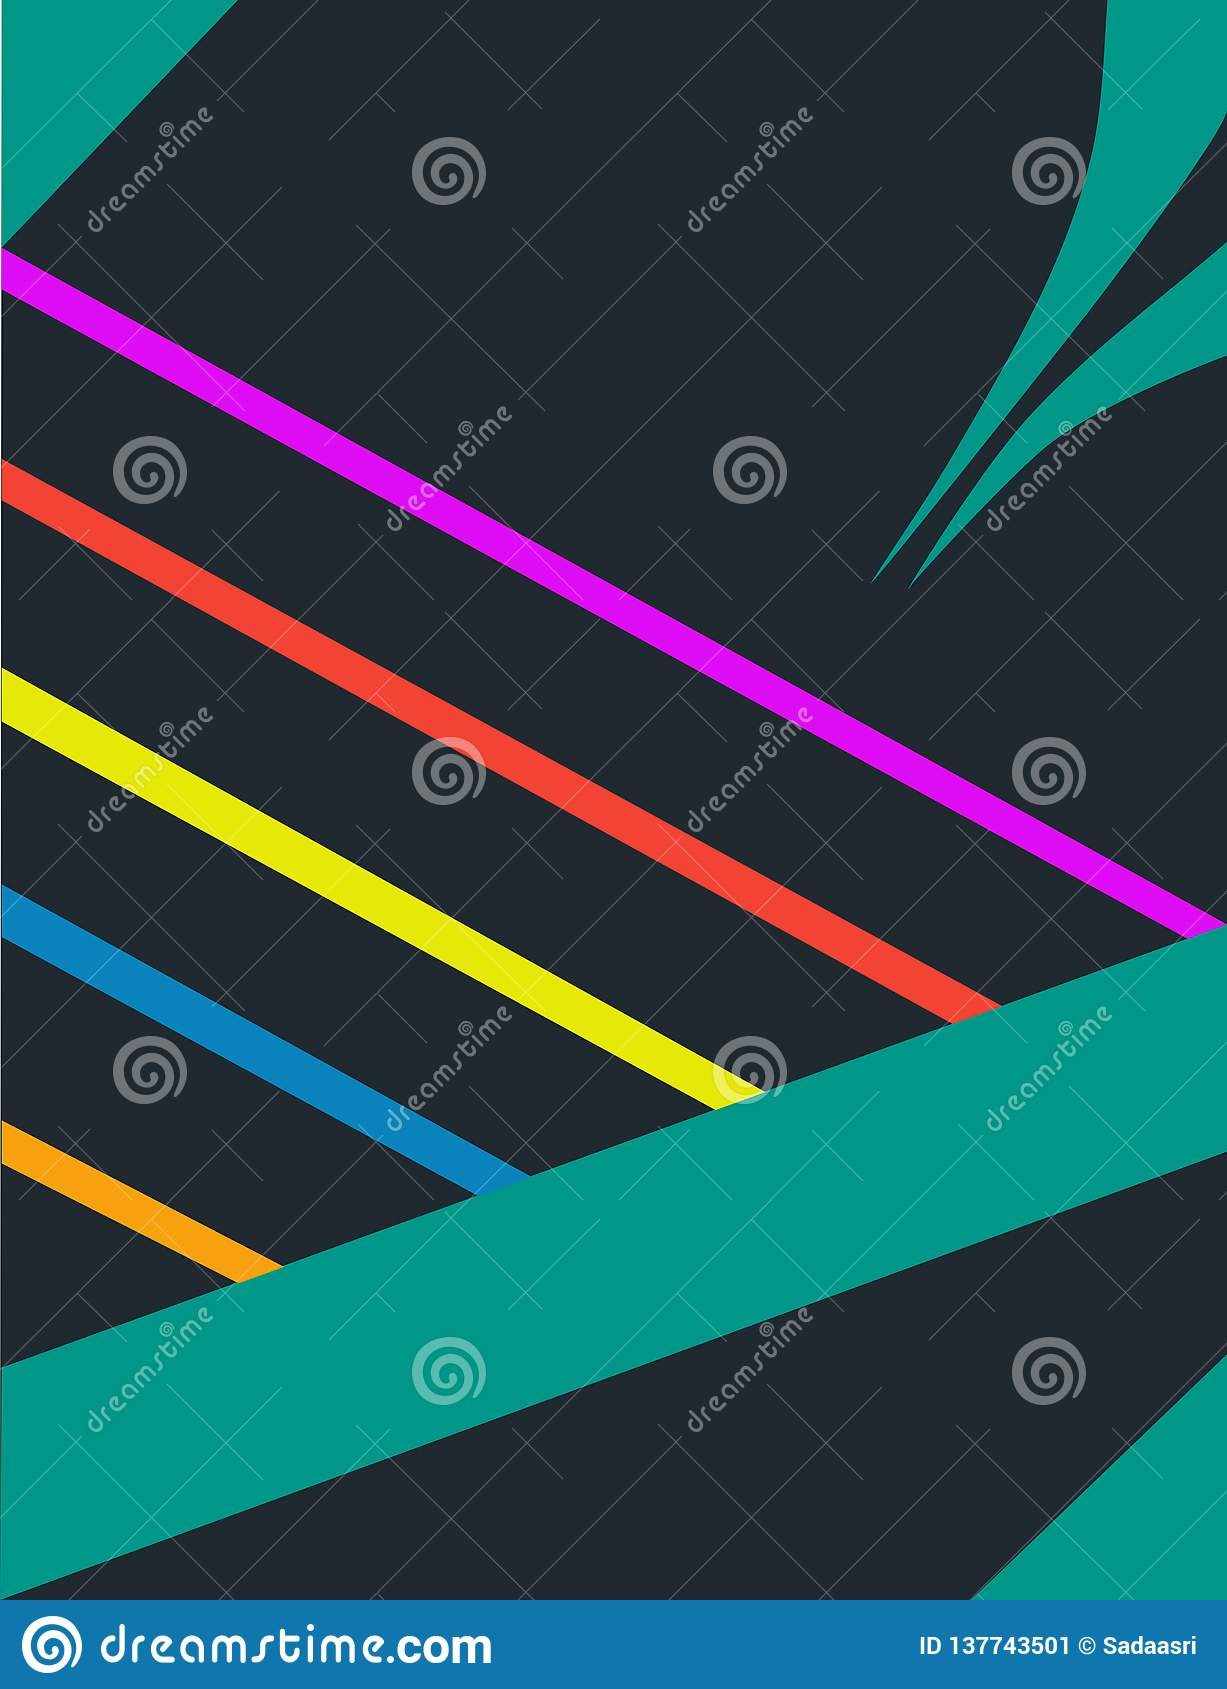 Material design wallpaper for user interfaces